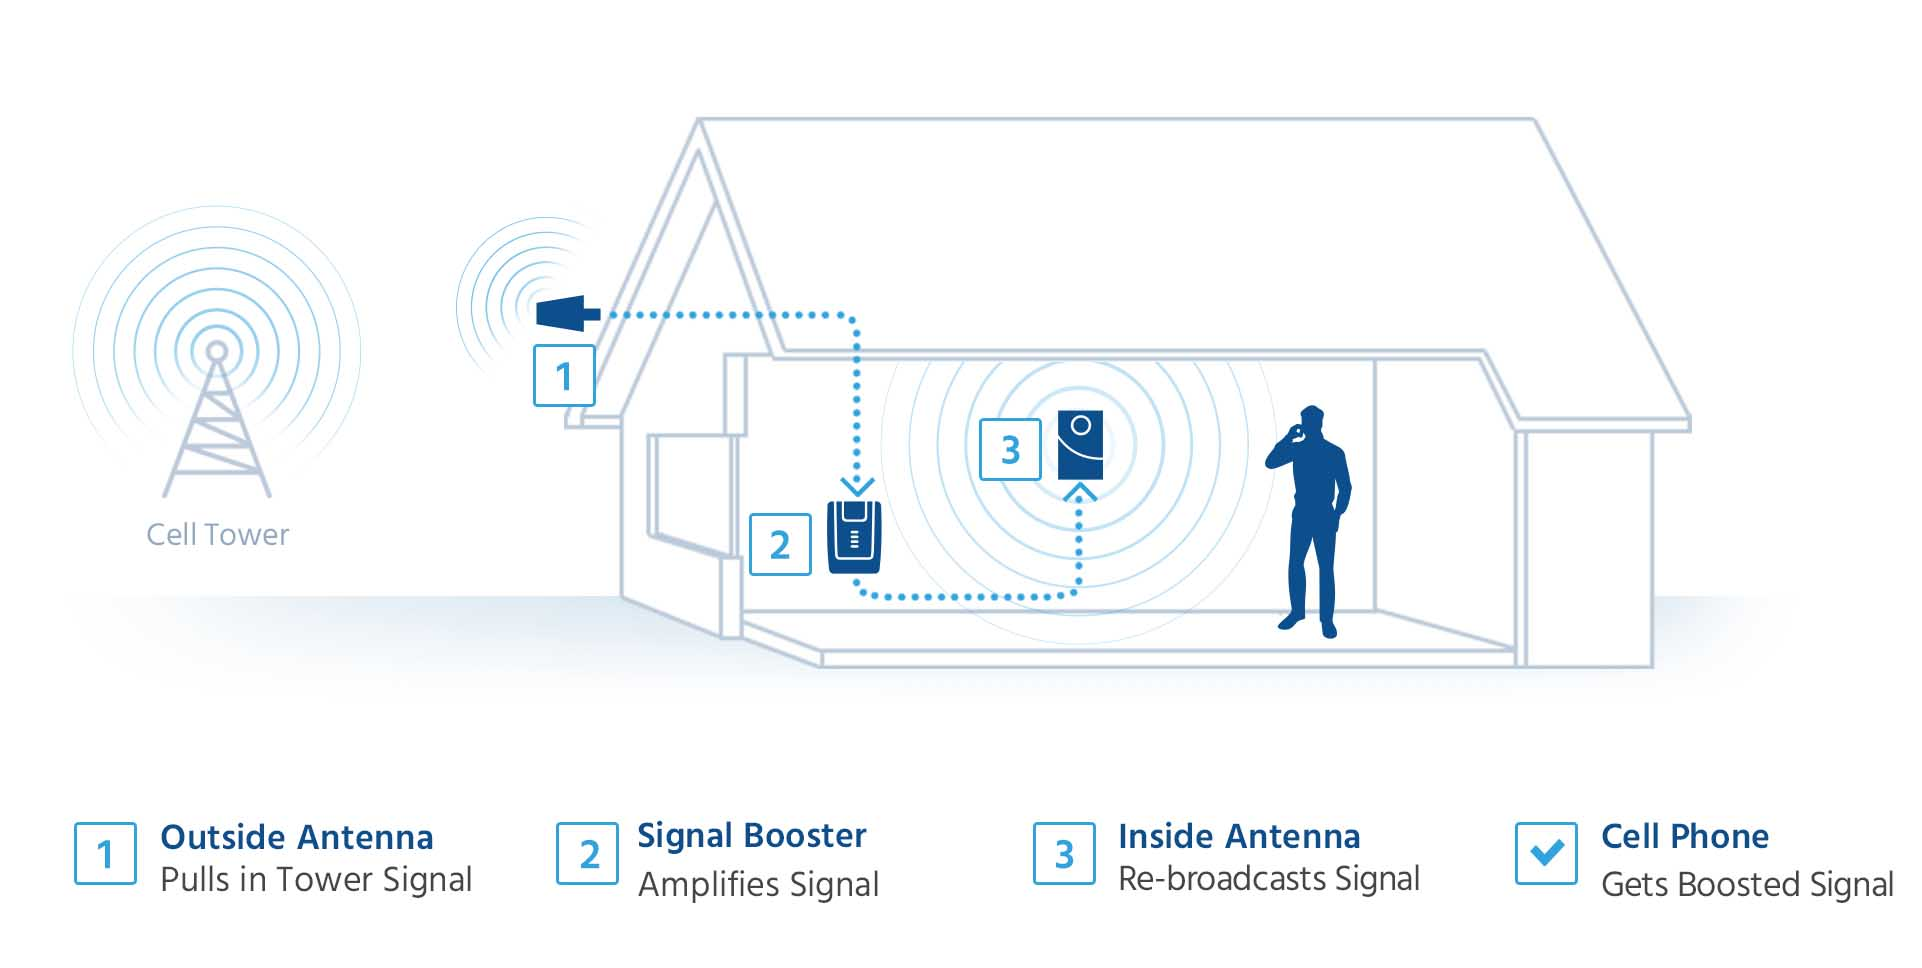 Cell phone signal booster for home, office building, or vehicle